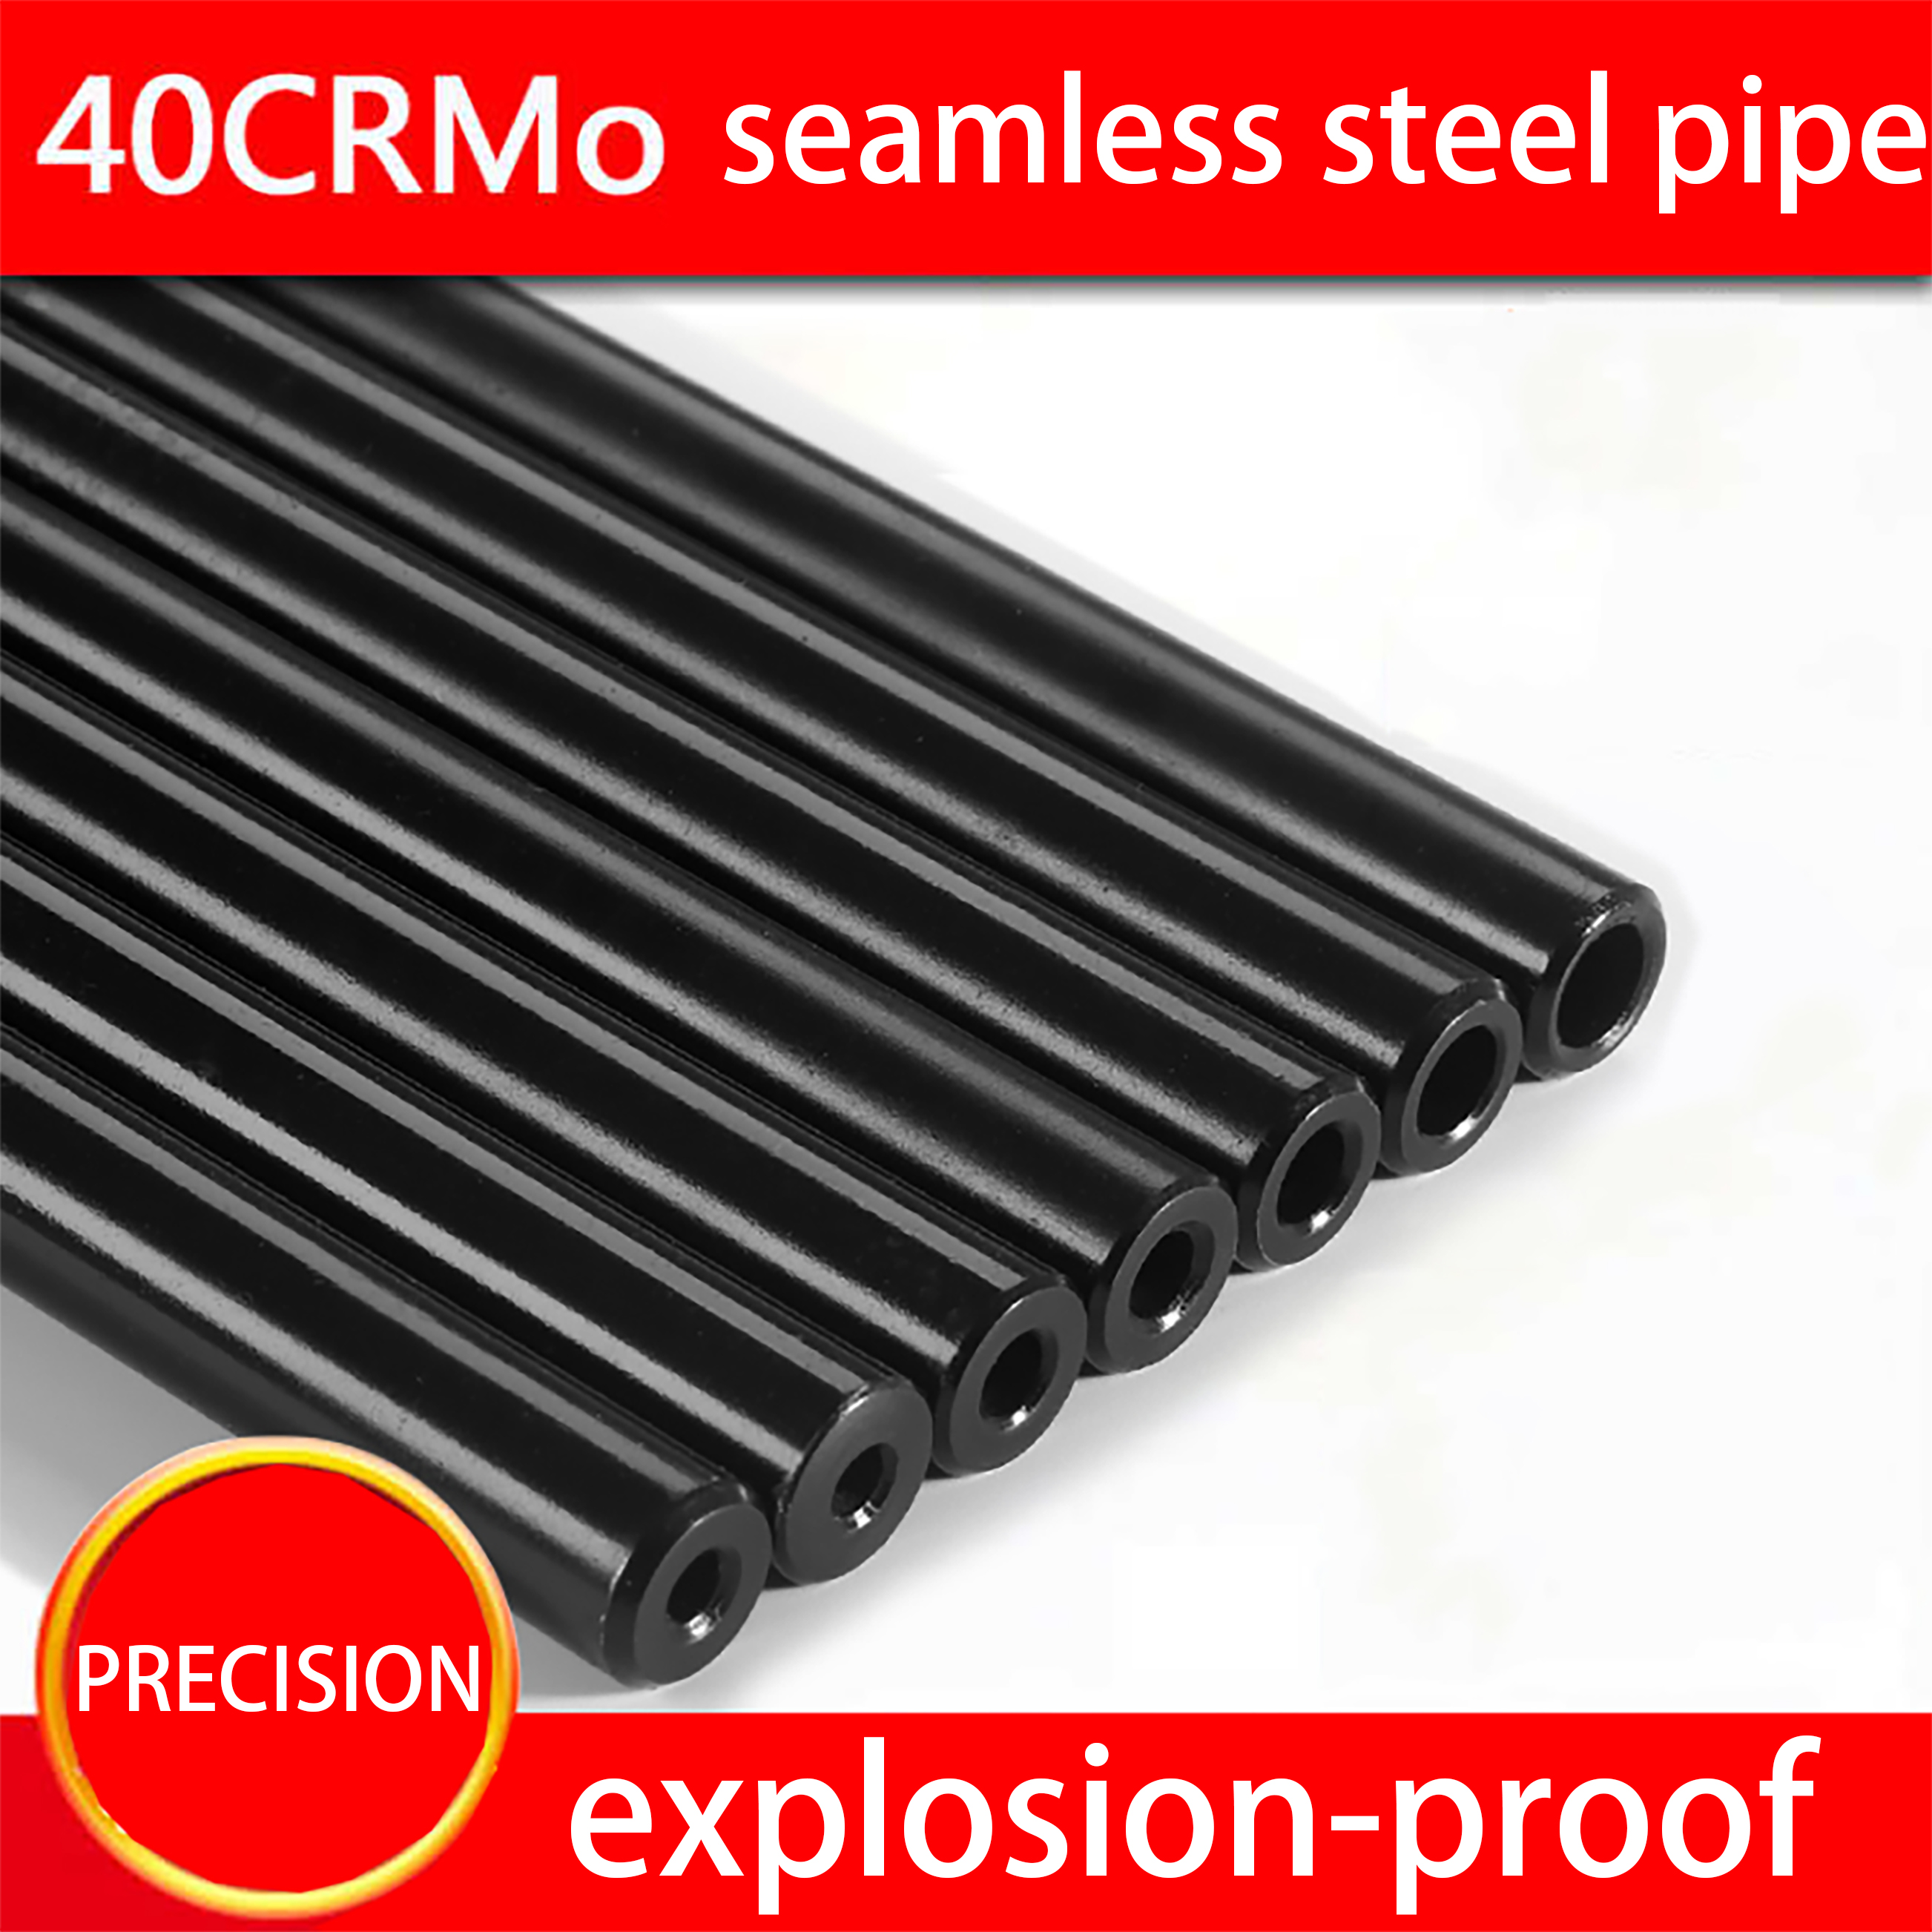 O/D 18mm Explosion-proof Seamless Steel Pipe Hydraulic Boilerfor Home DIY